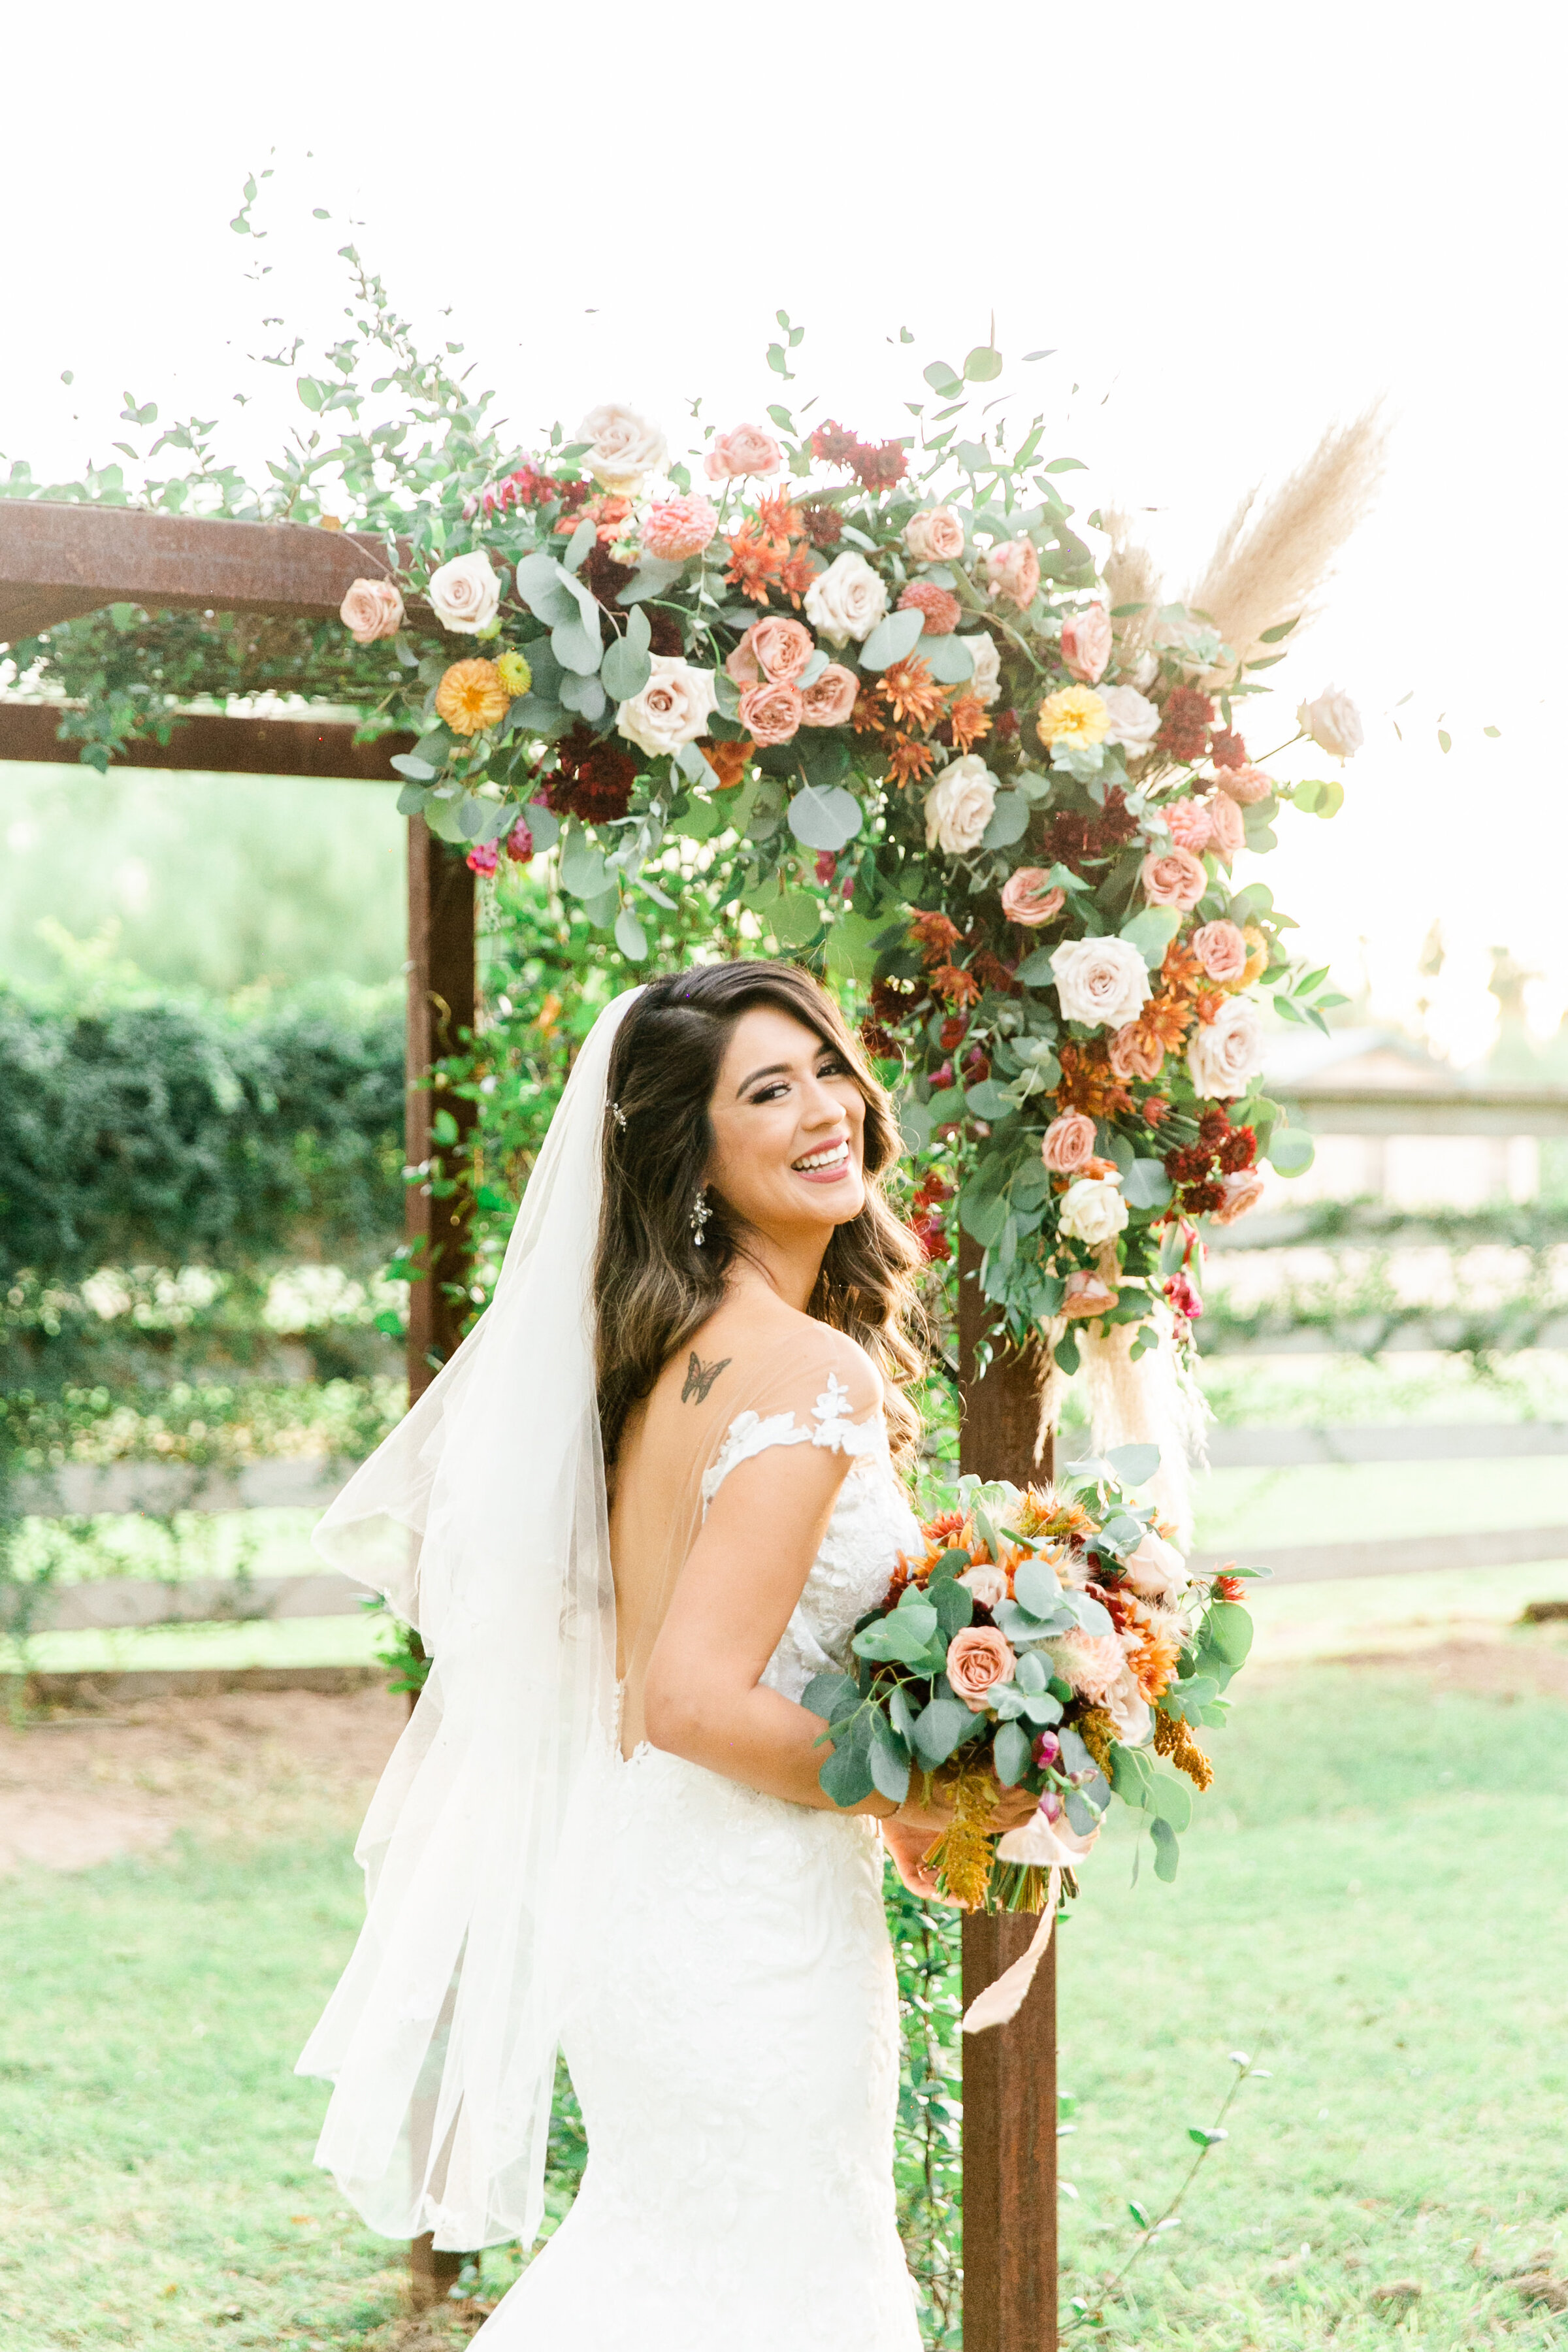 Karlie Colleen Photography - Phoenix Arizona - Farm At South Mountain Venue - Vanessa & Robert-679